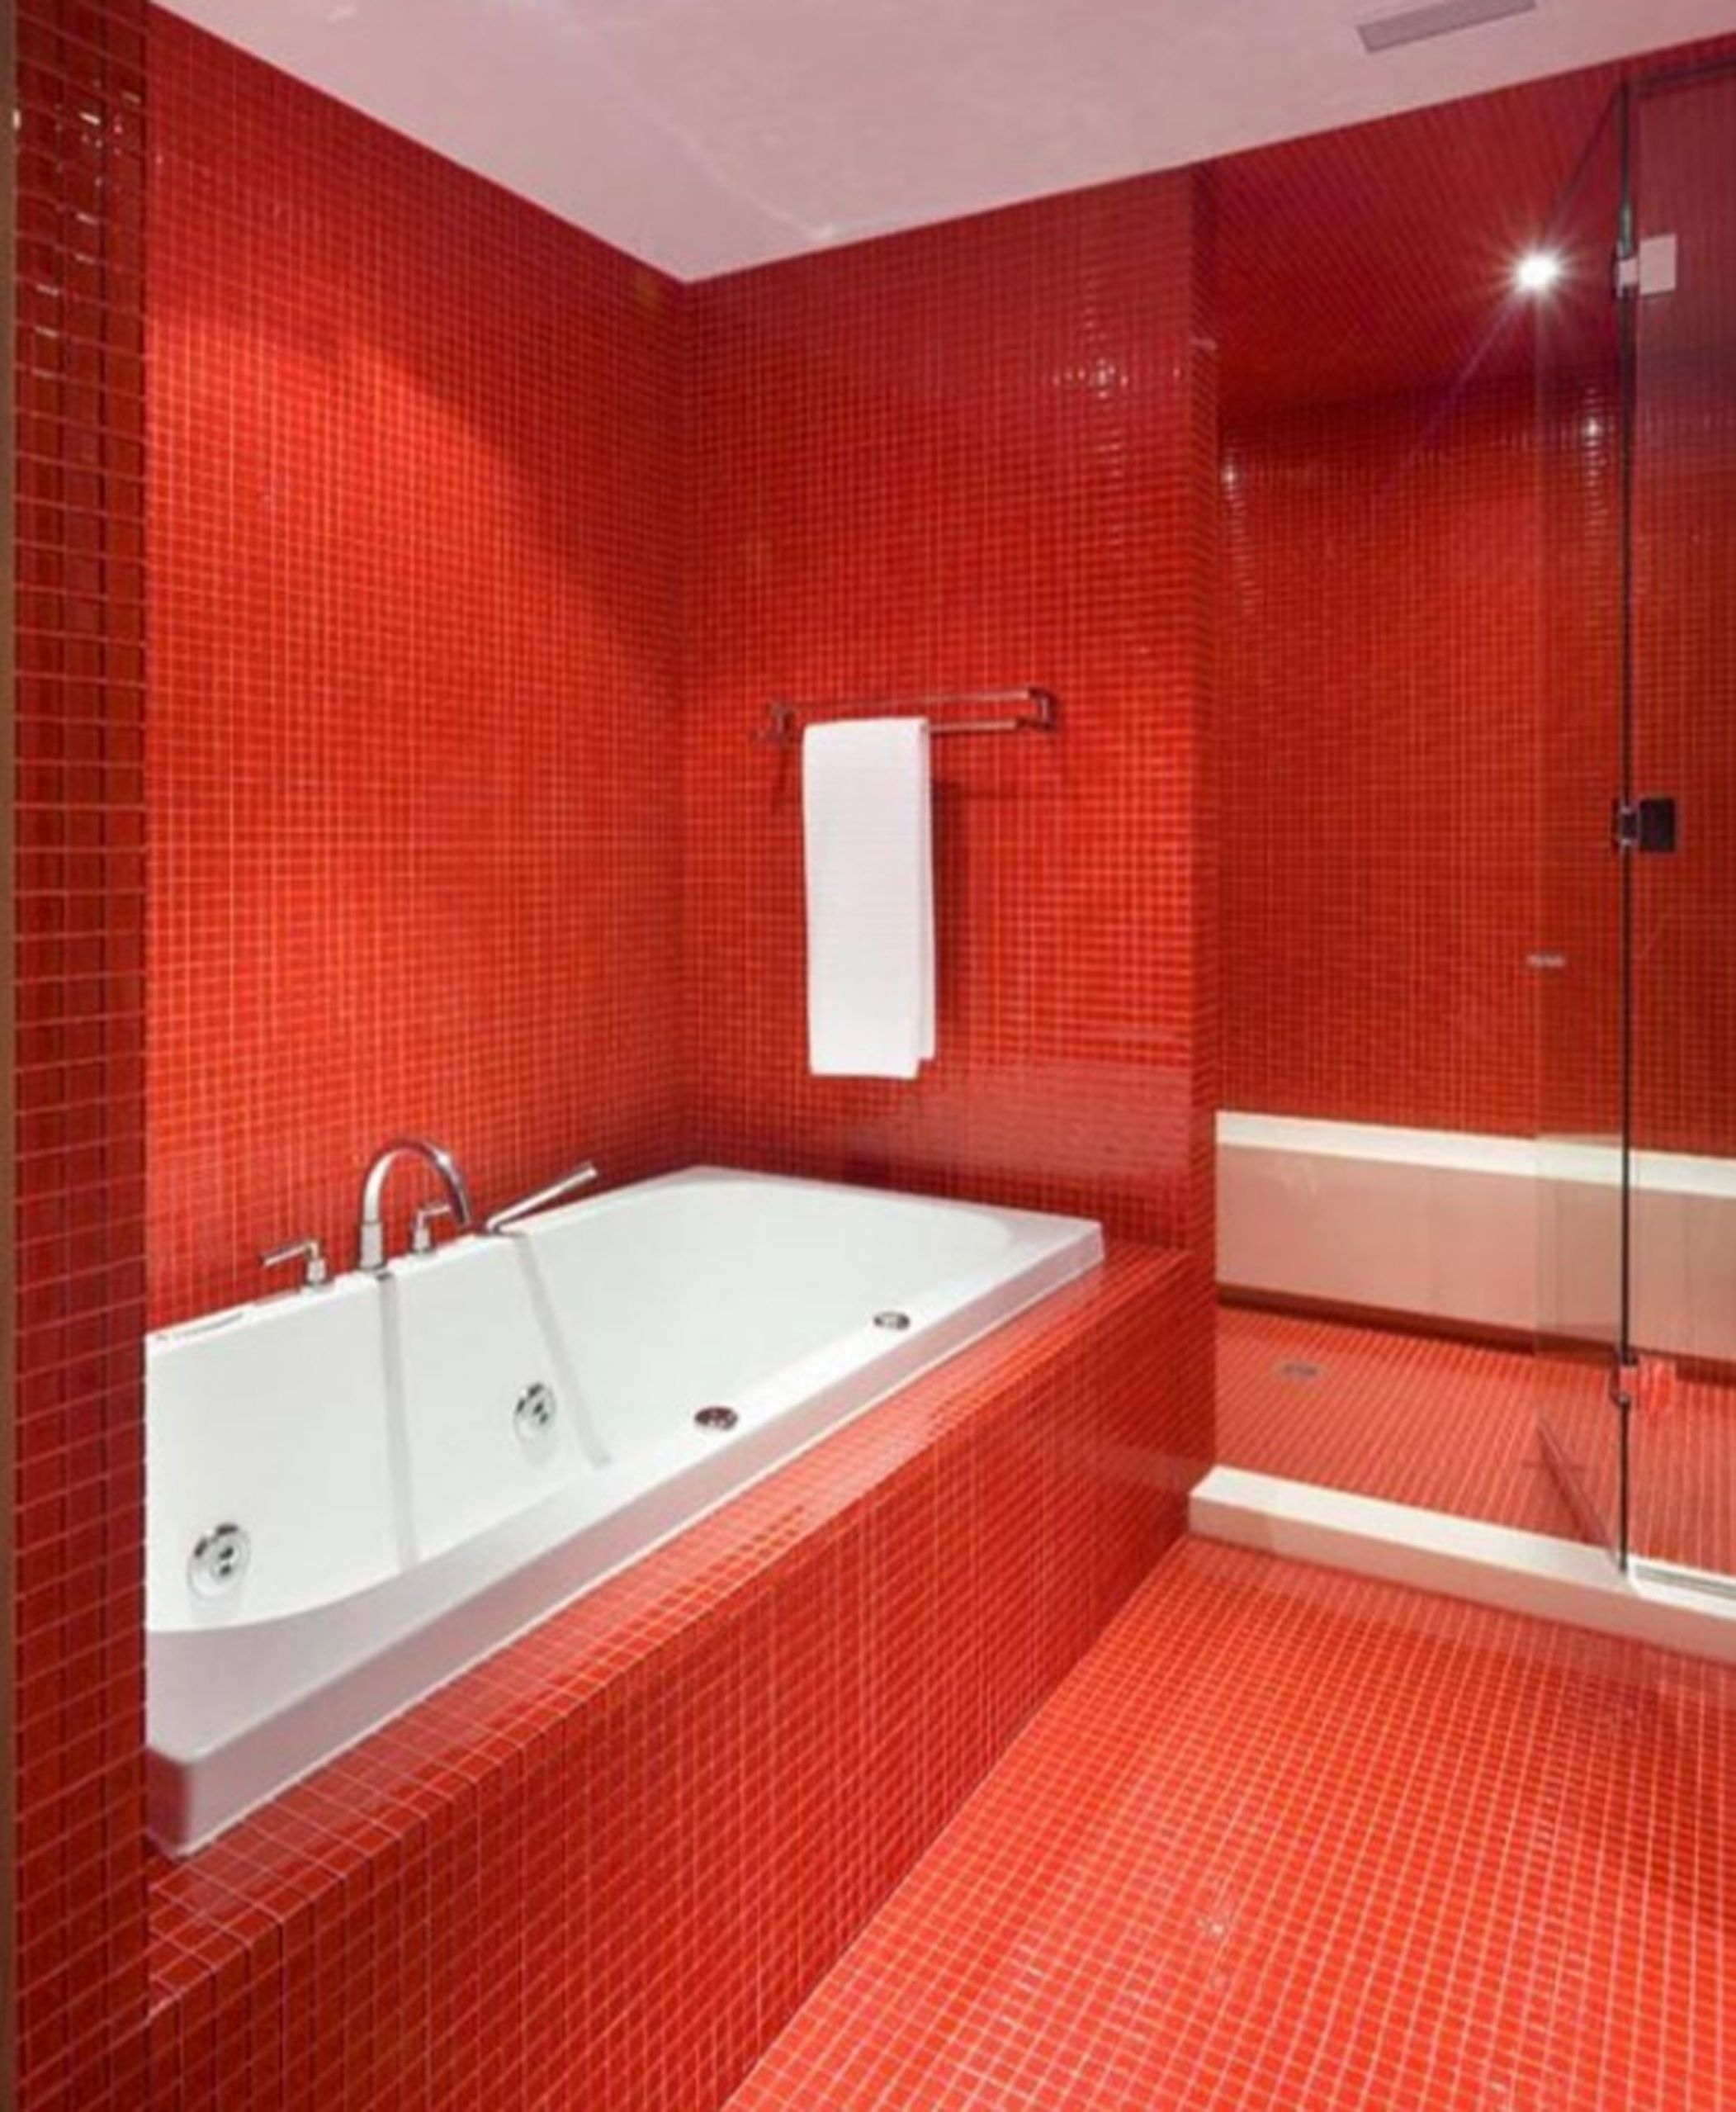 red bathroom color ideas. Captivating Red Bathroom Color Ideas For Painting: Jcpenney Decor Design Double Sink Vanity Narrow